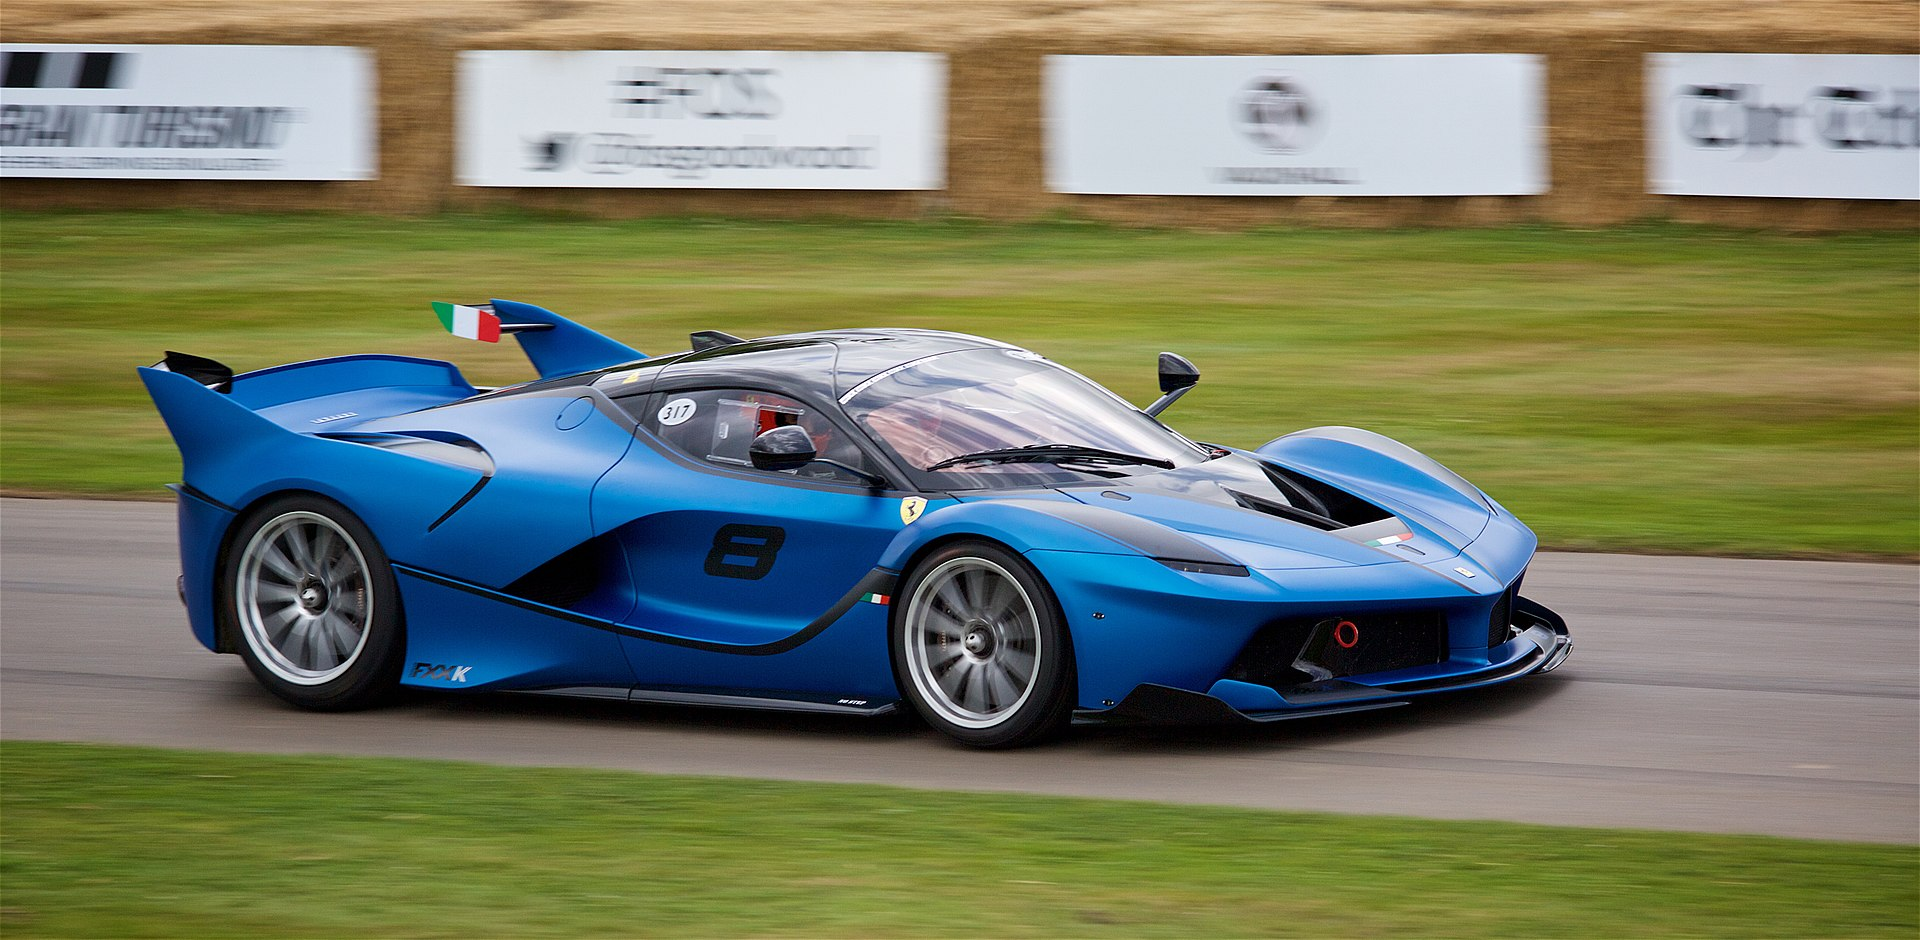 Ferrari FXX-K expensive car in blue on racetrack